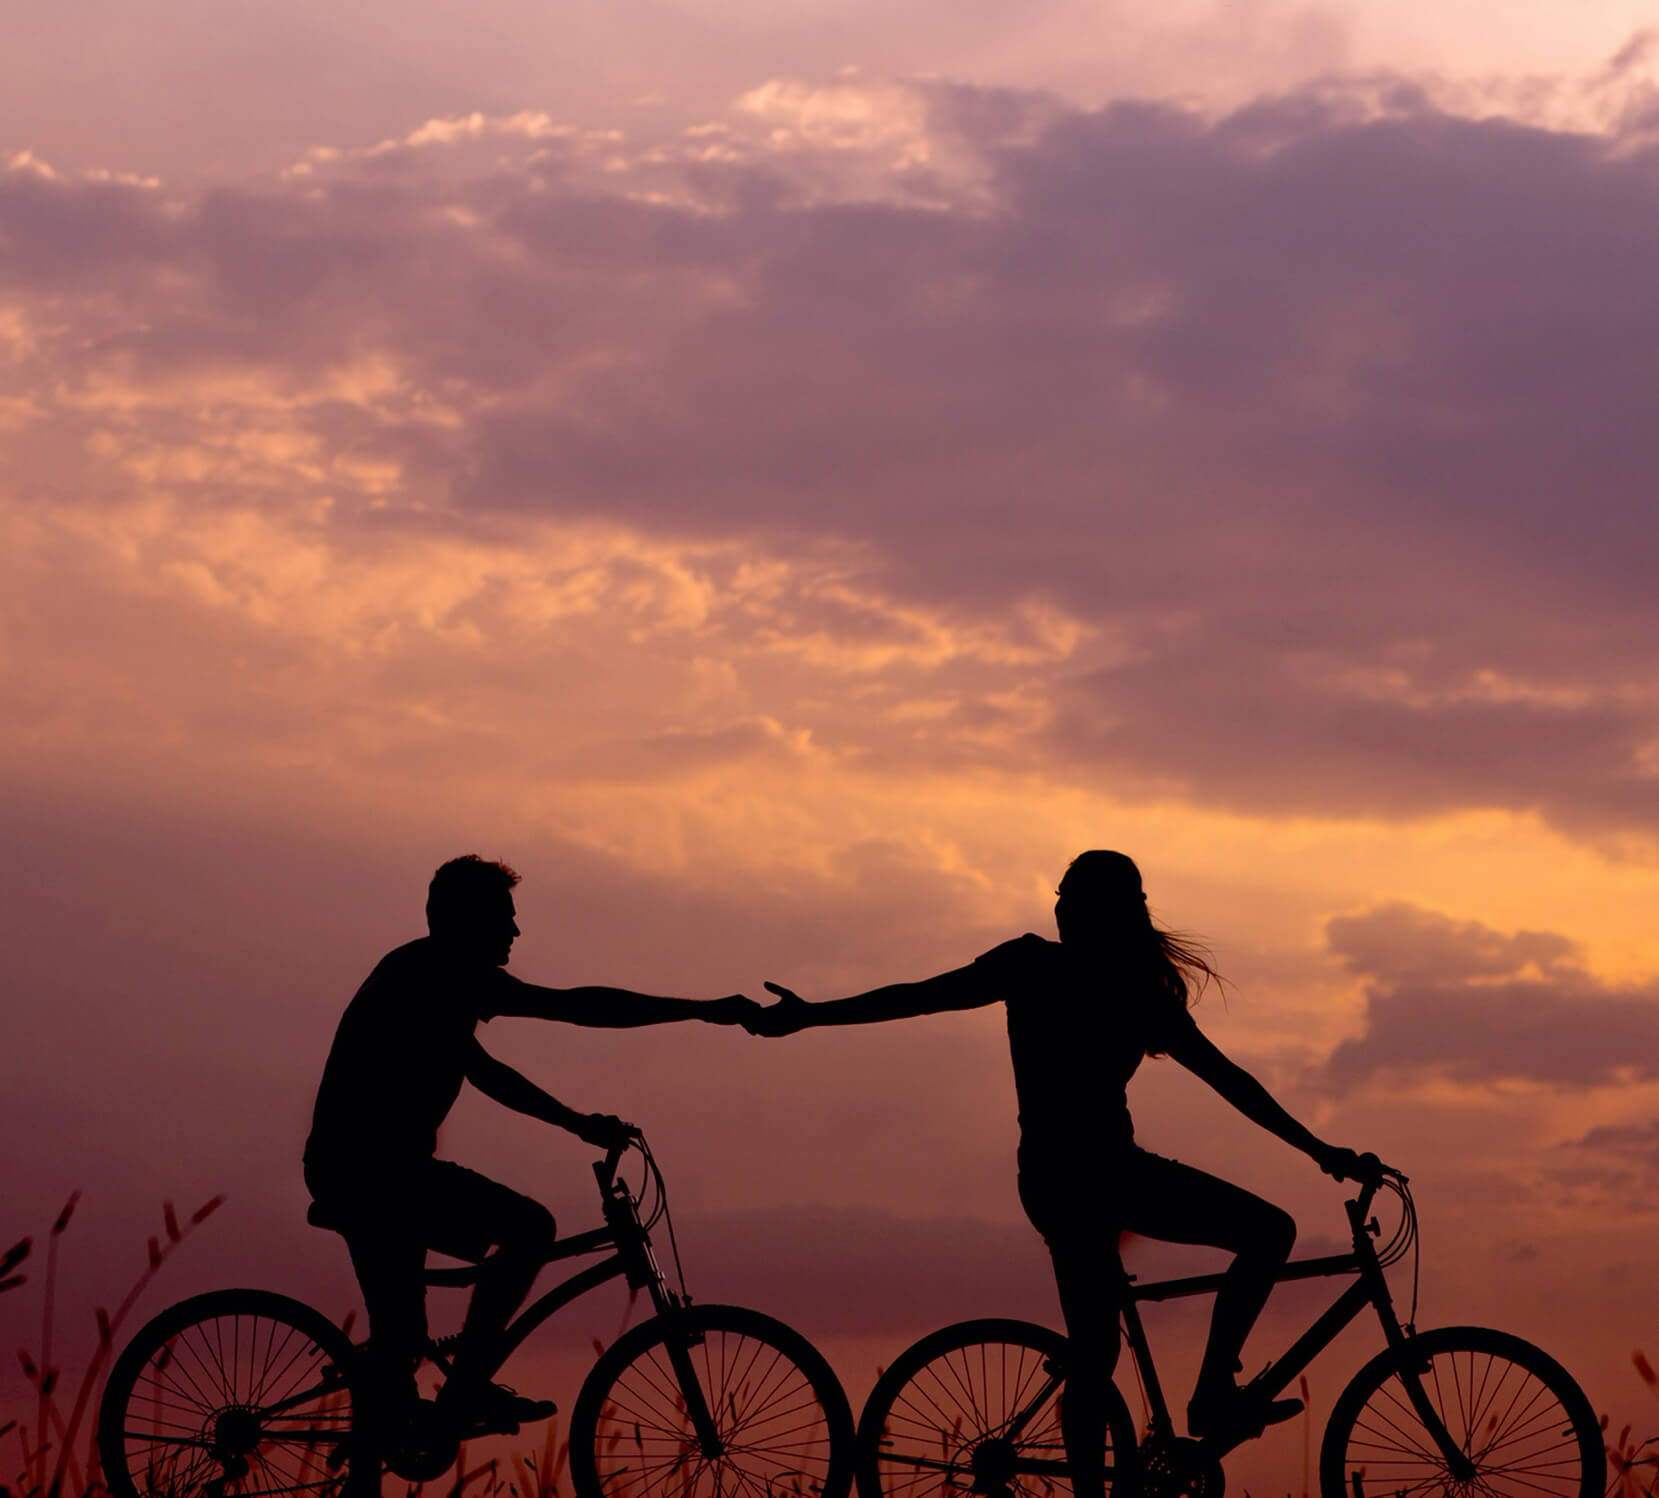 woman on bike reaching for man's hand behind her also on bike photo